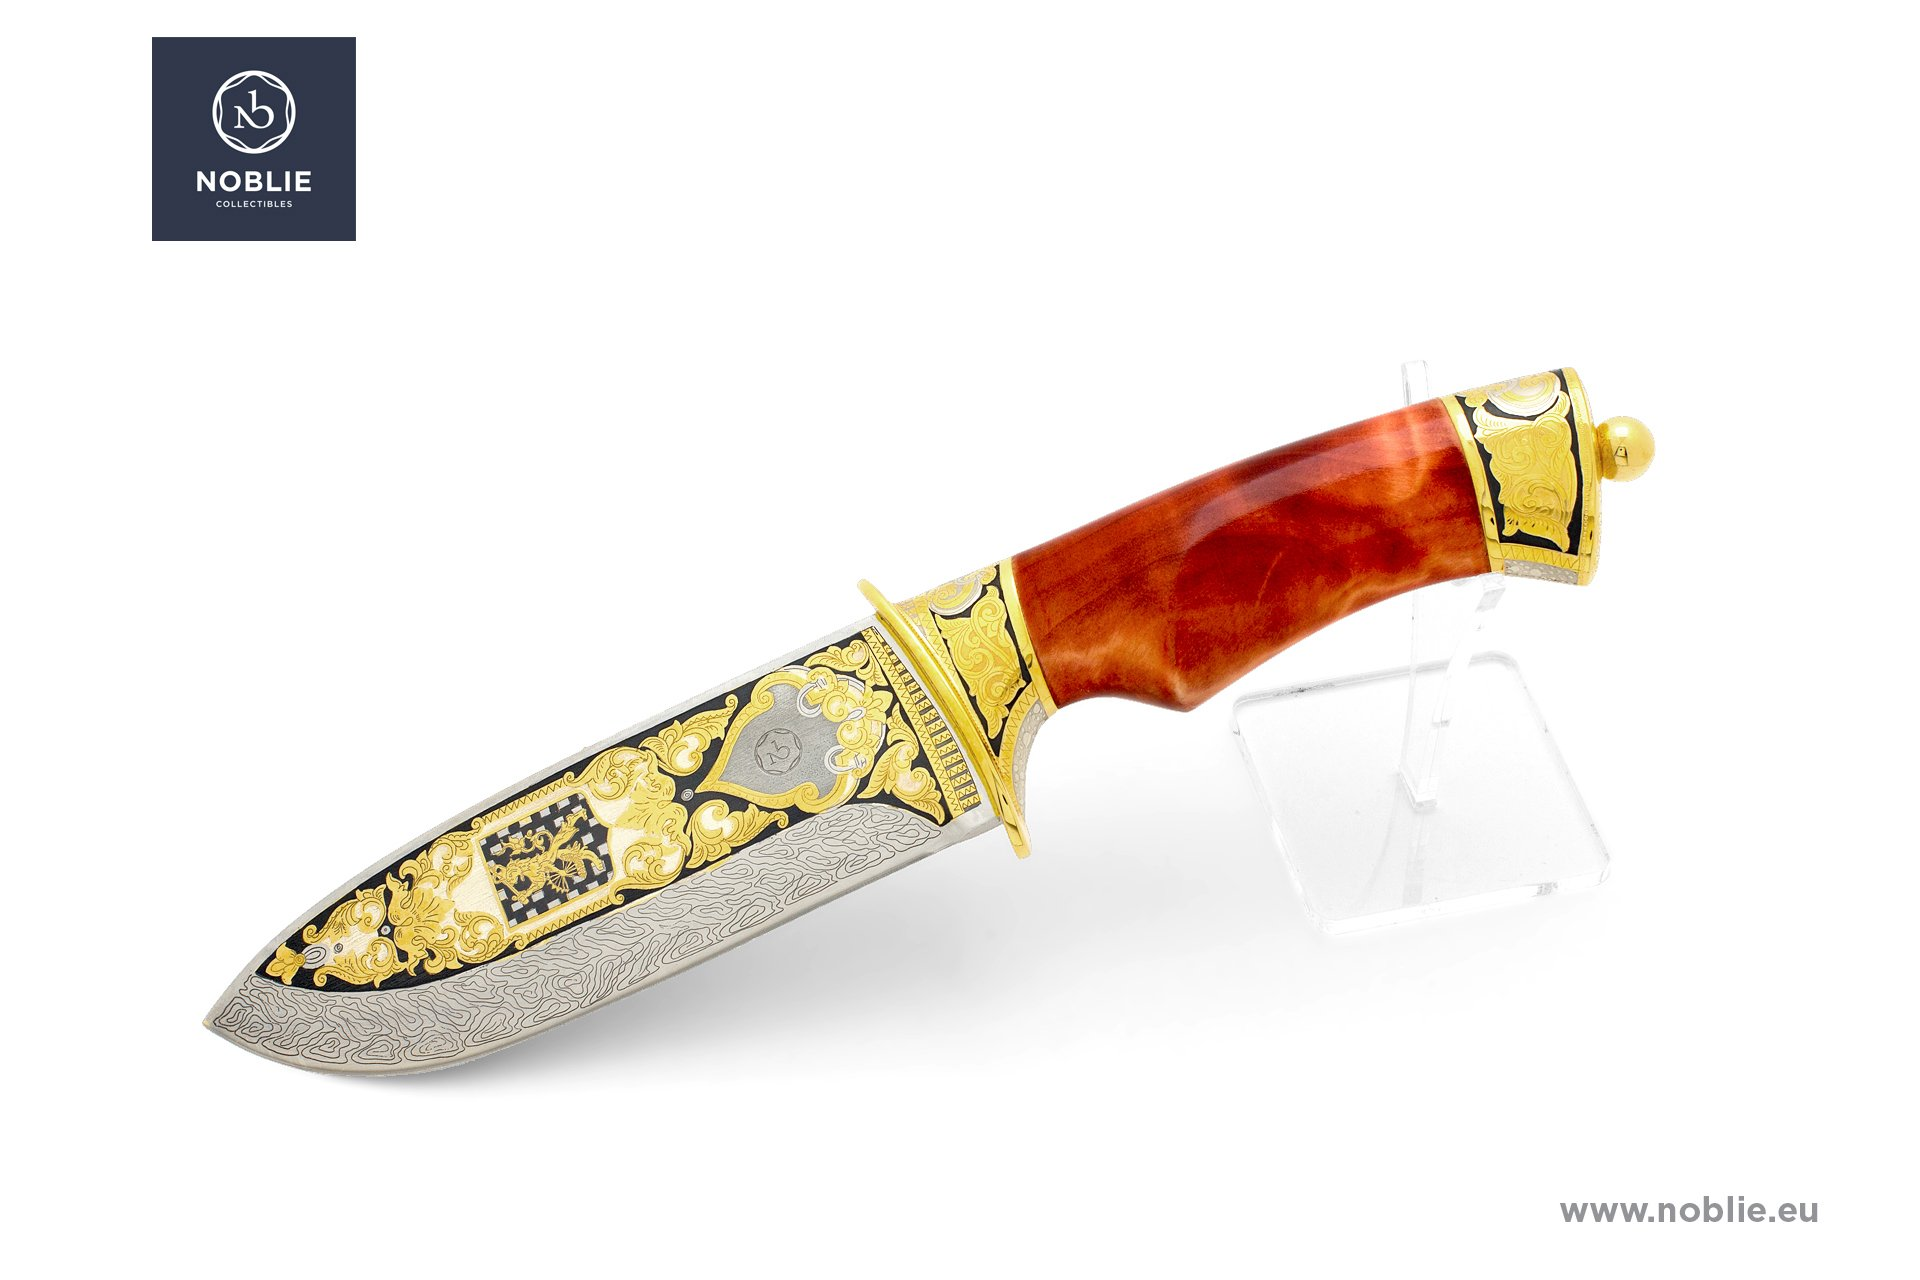 handmade art knife ''Willem Barentsz''